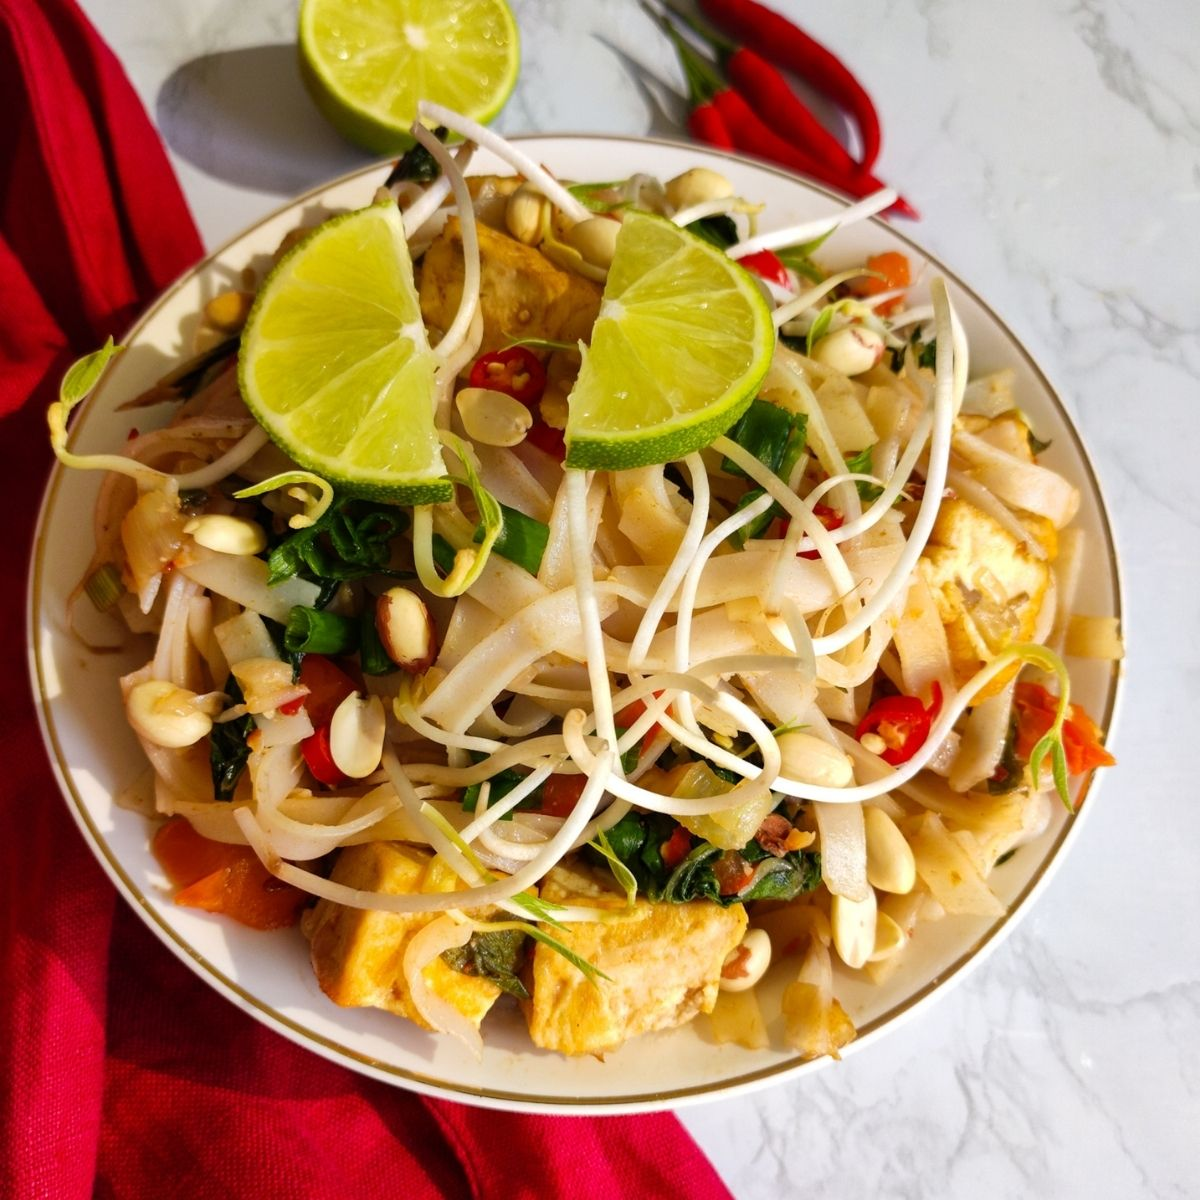 Vegan Pad Thai served in a white bowl garnished with lime wedges